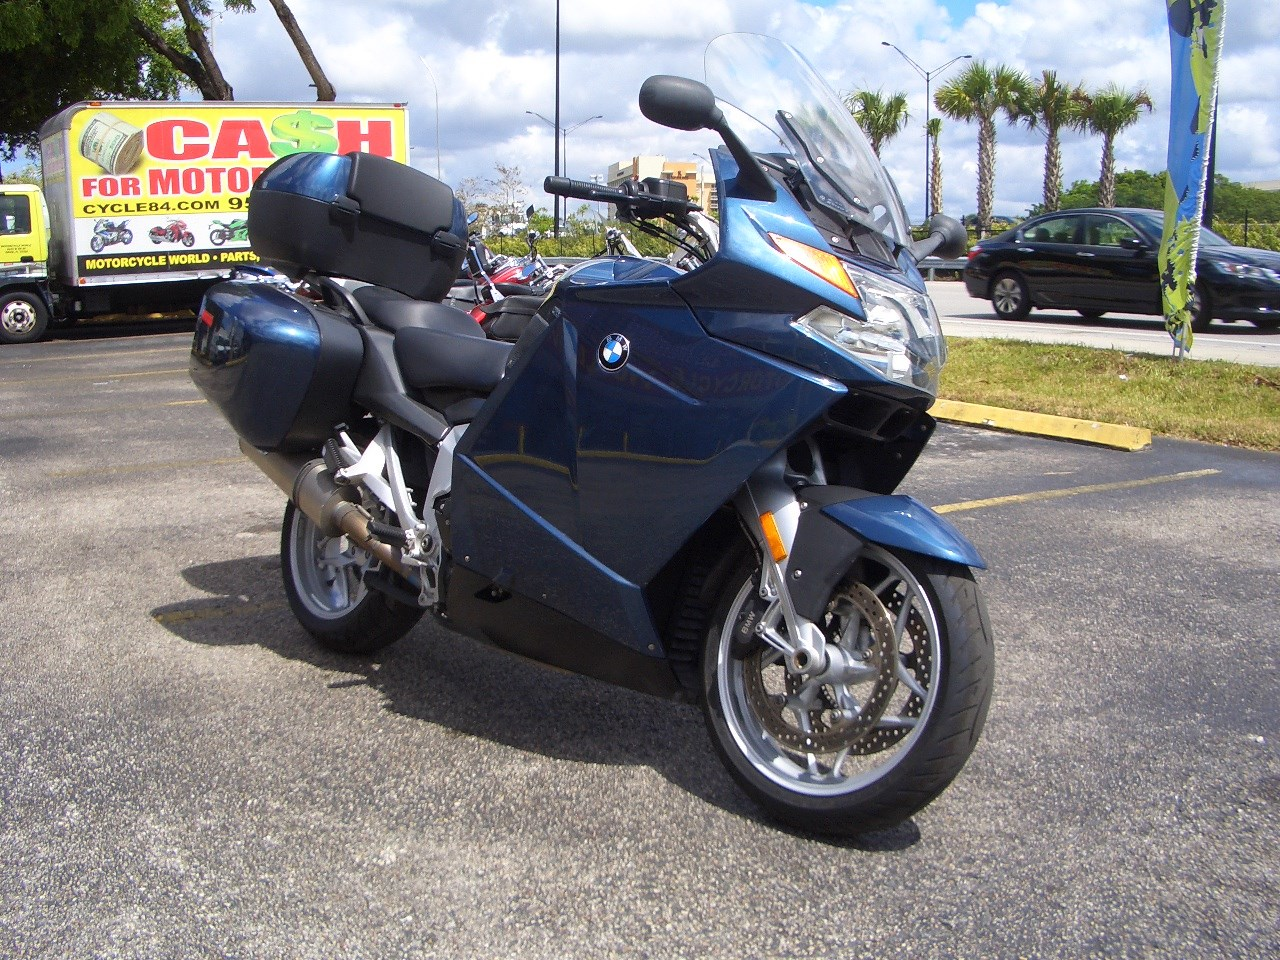 2007 bmw k 1200 lt touring motorcycle from fort lauderdale fl today. Cars Review. Best American Auto & Cars Review